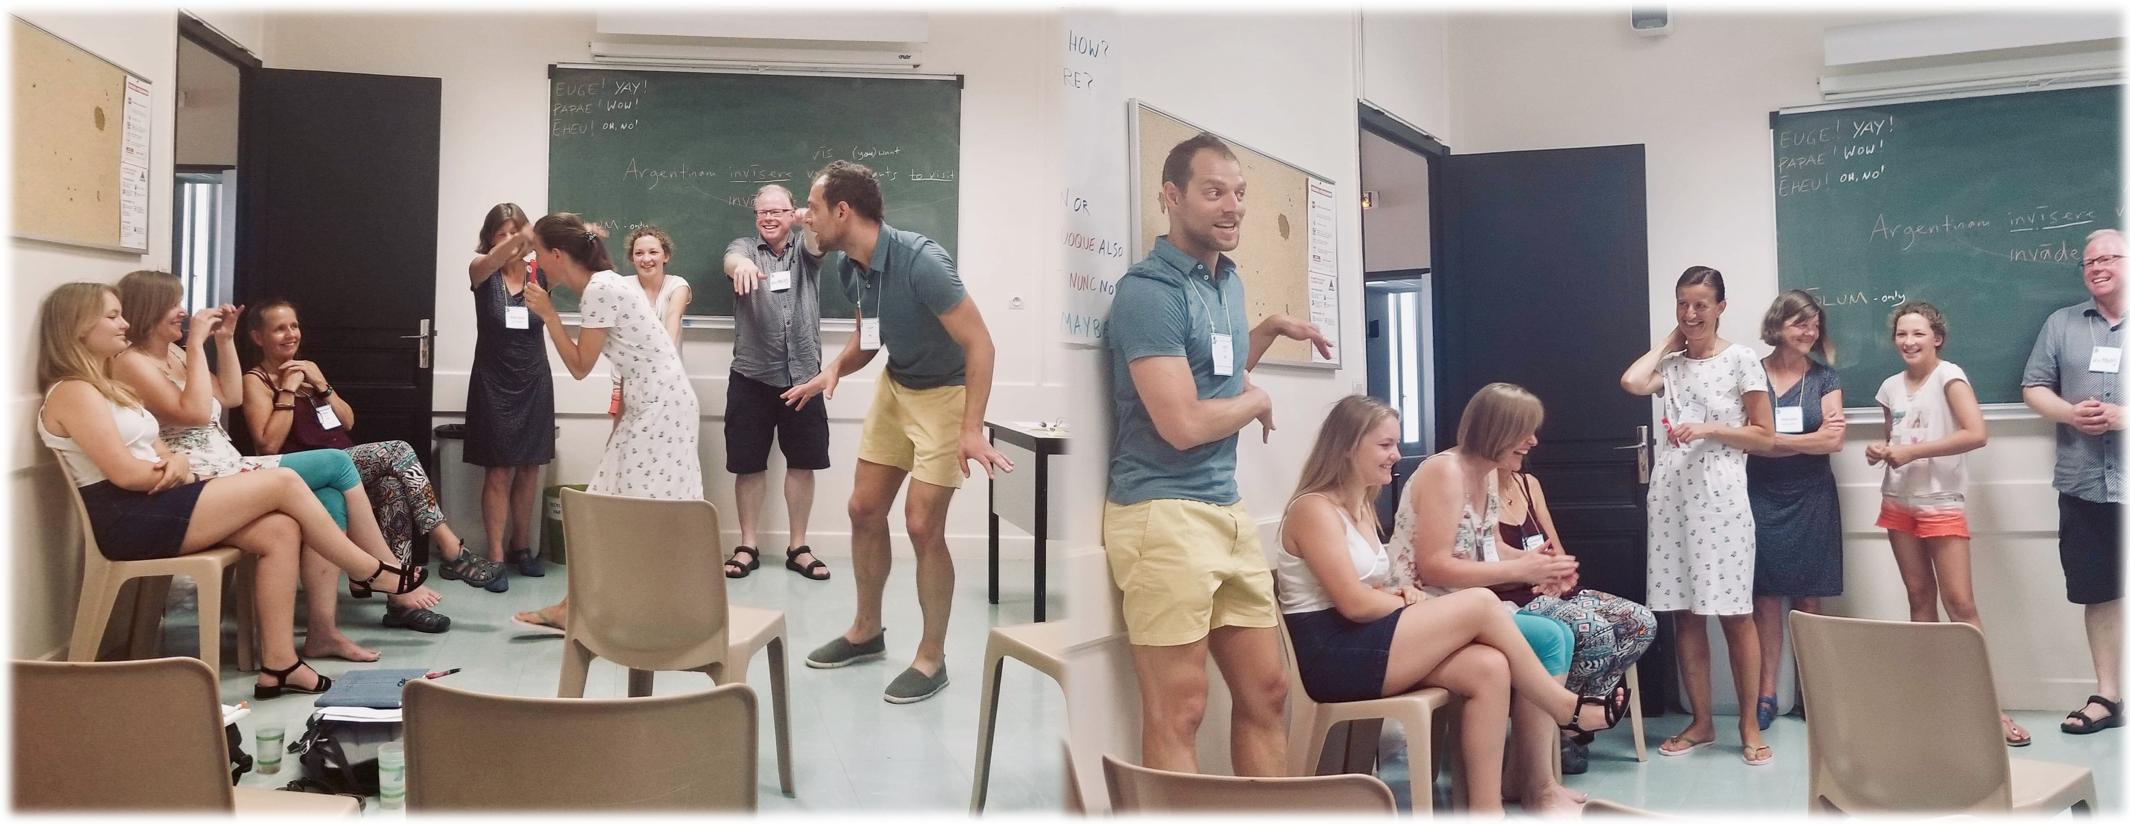 Students laughing in Justin Slocum Bailey's Latin language lab at Agen Workshop 2019